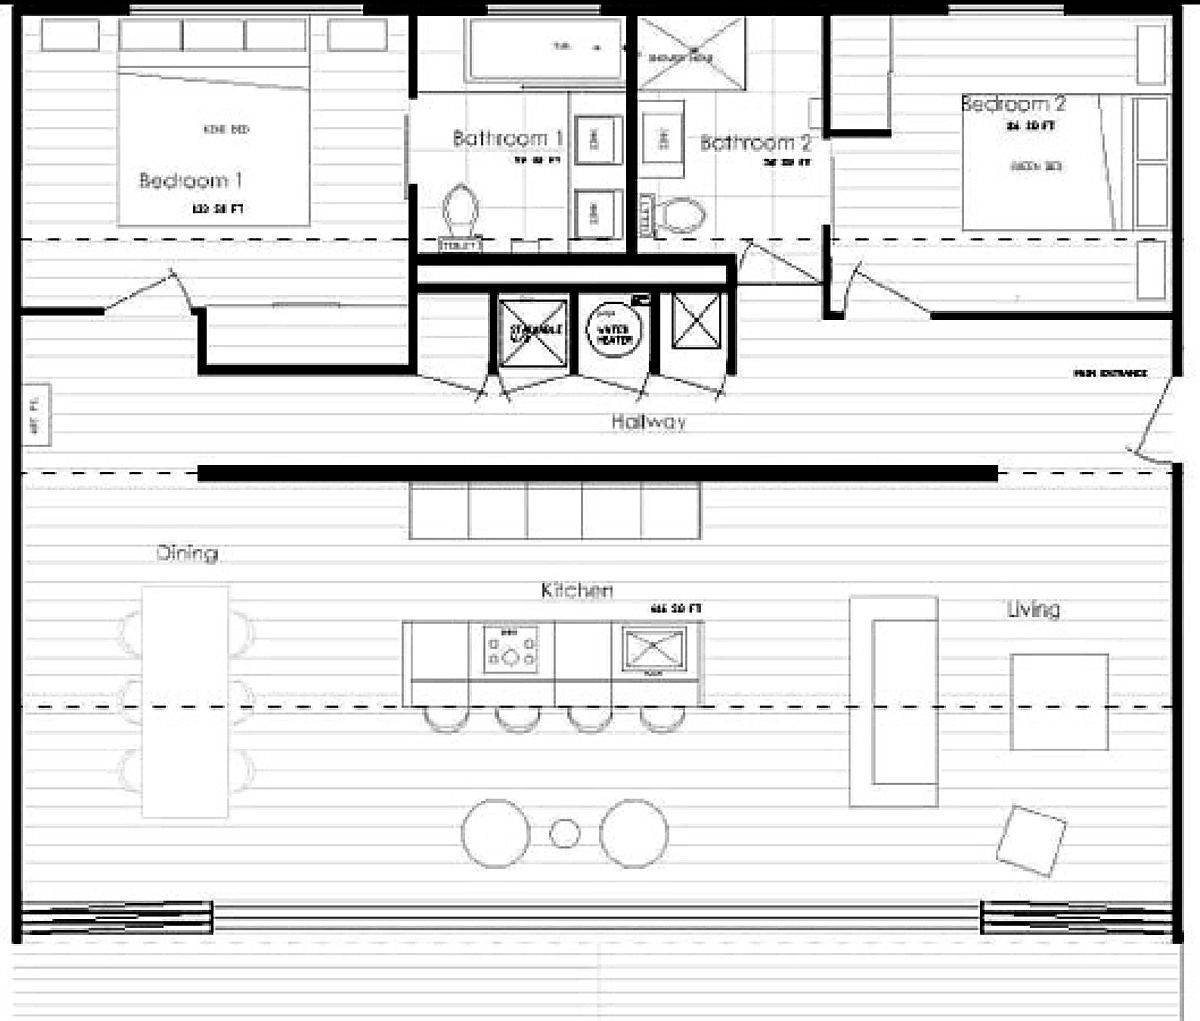 Container home floor plan iq hause christopher bord for Shipping container homes floor plans